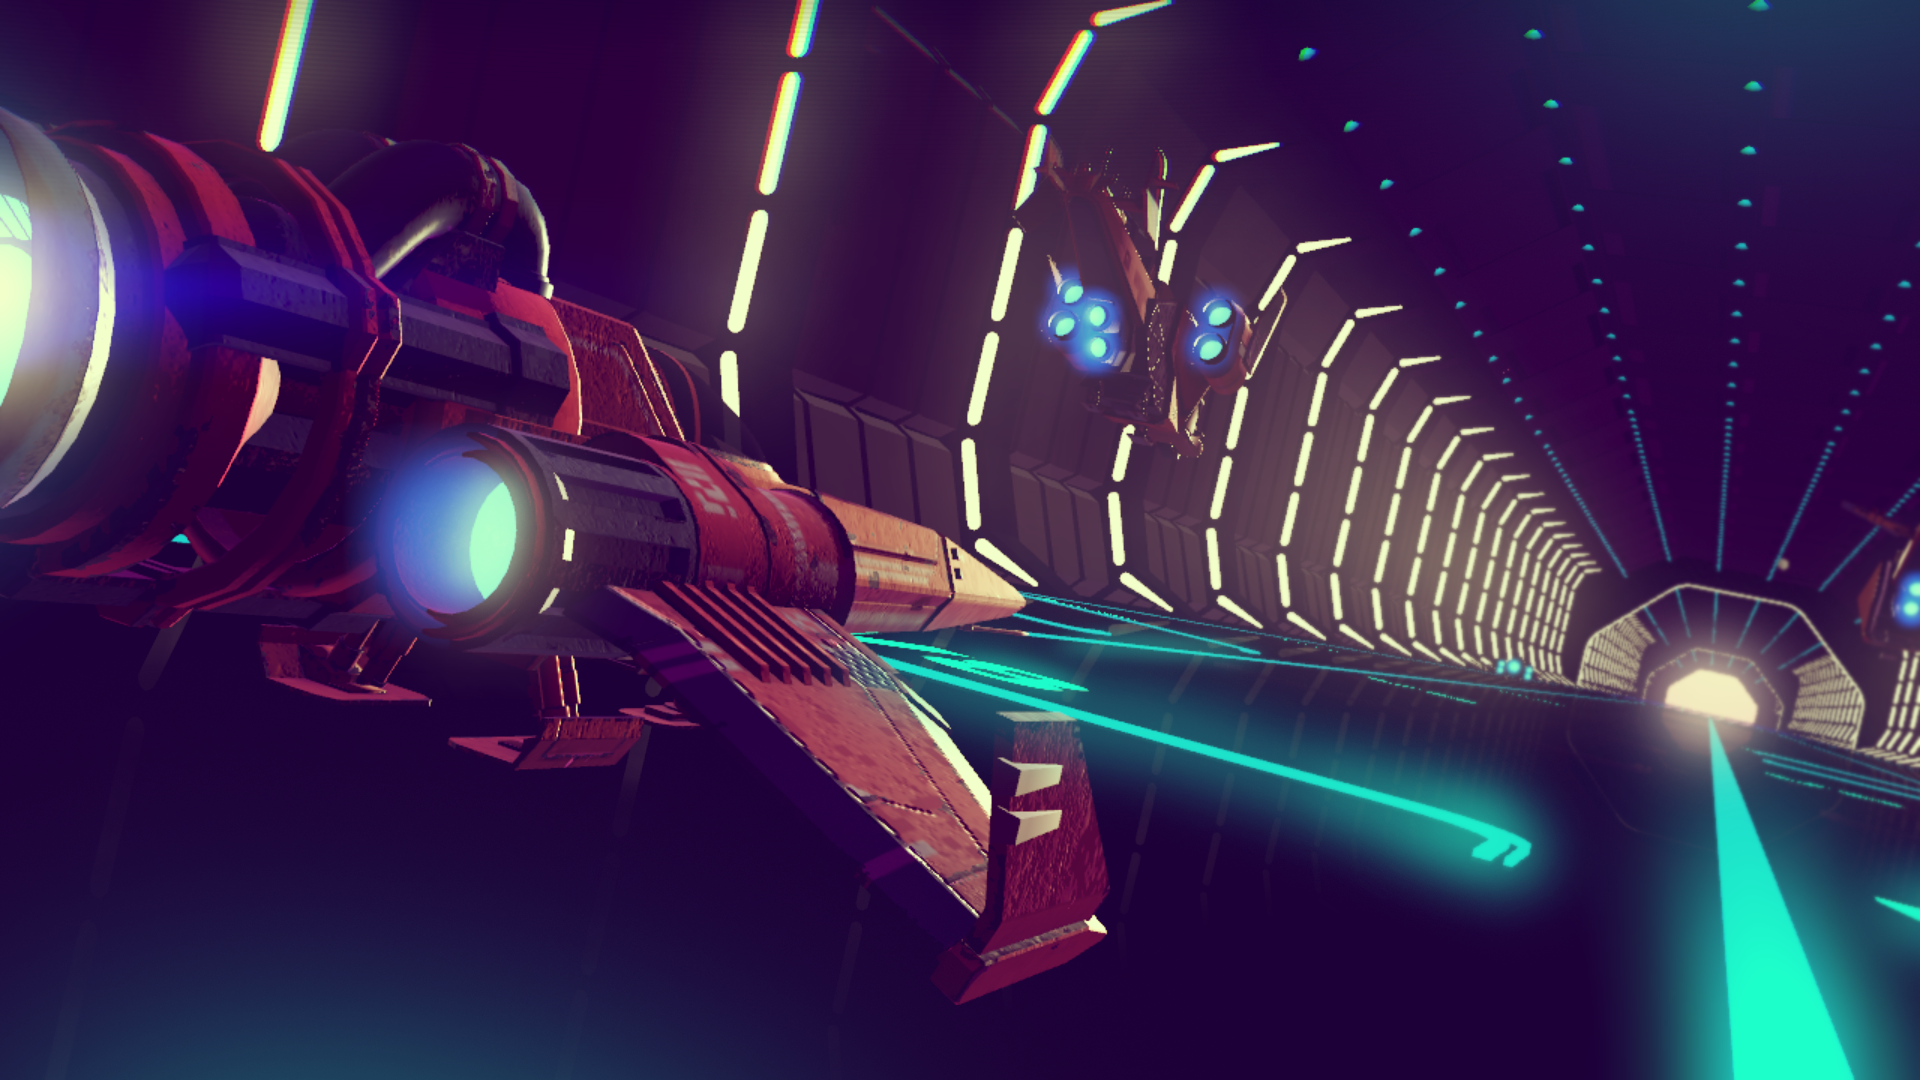 The version of No Man's Sky you'll (hopefully) never play